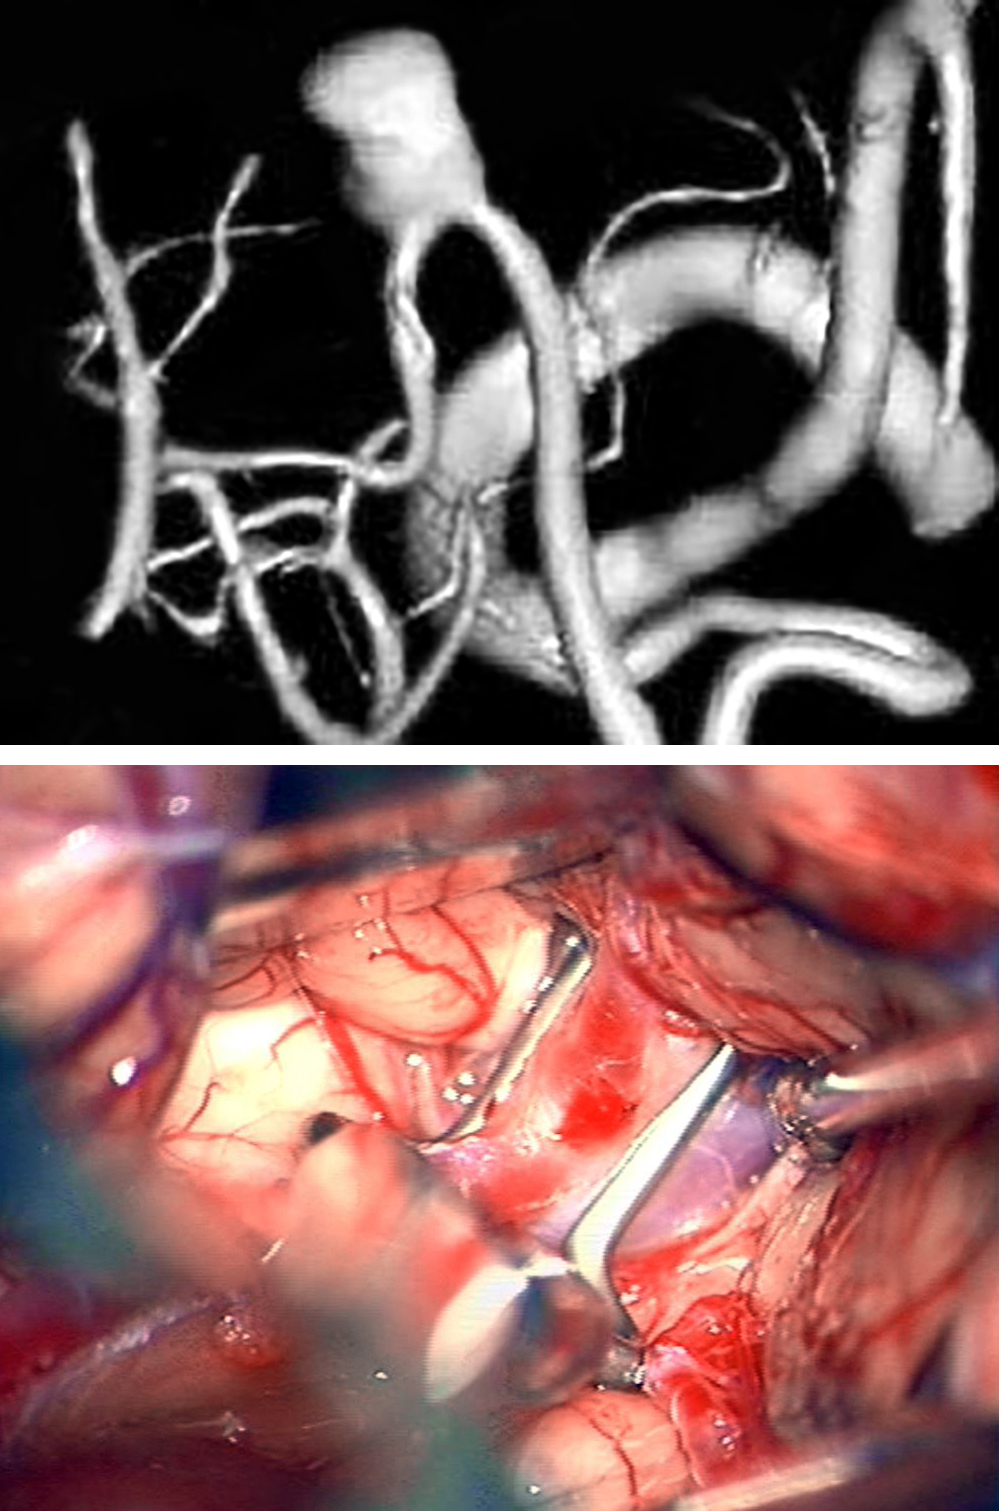 Figure 14: A distal PICA aneurysm with a fusiform neck (upper image) along the floor of the fourth ventricle was clipped using an angled fenestrated clip (lower image) via the telovelar approach.